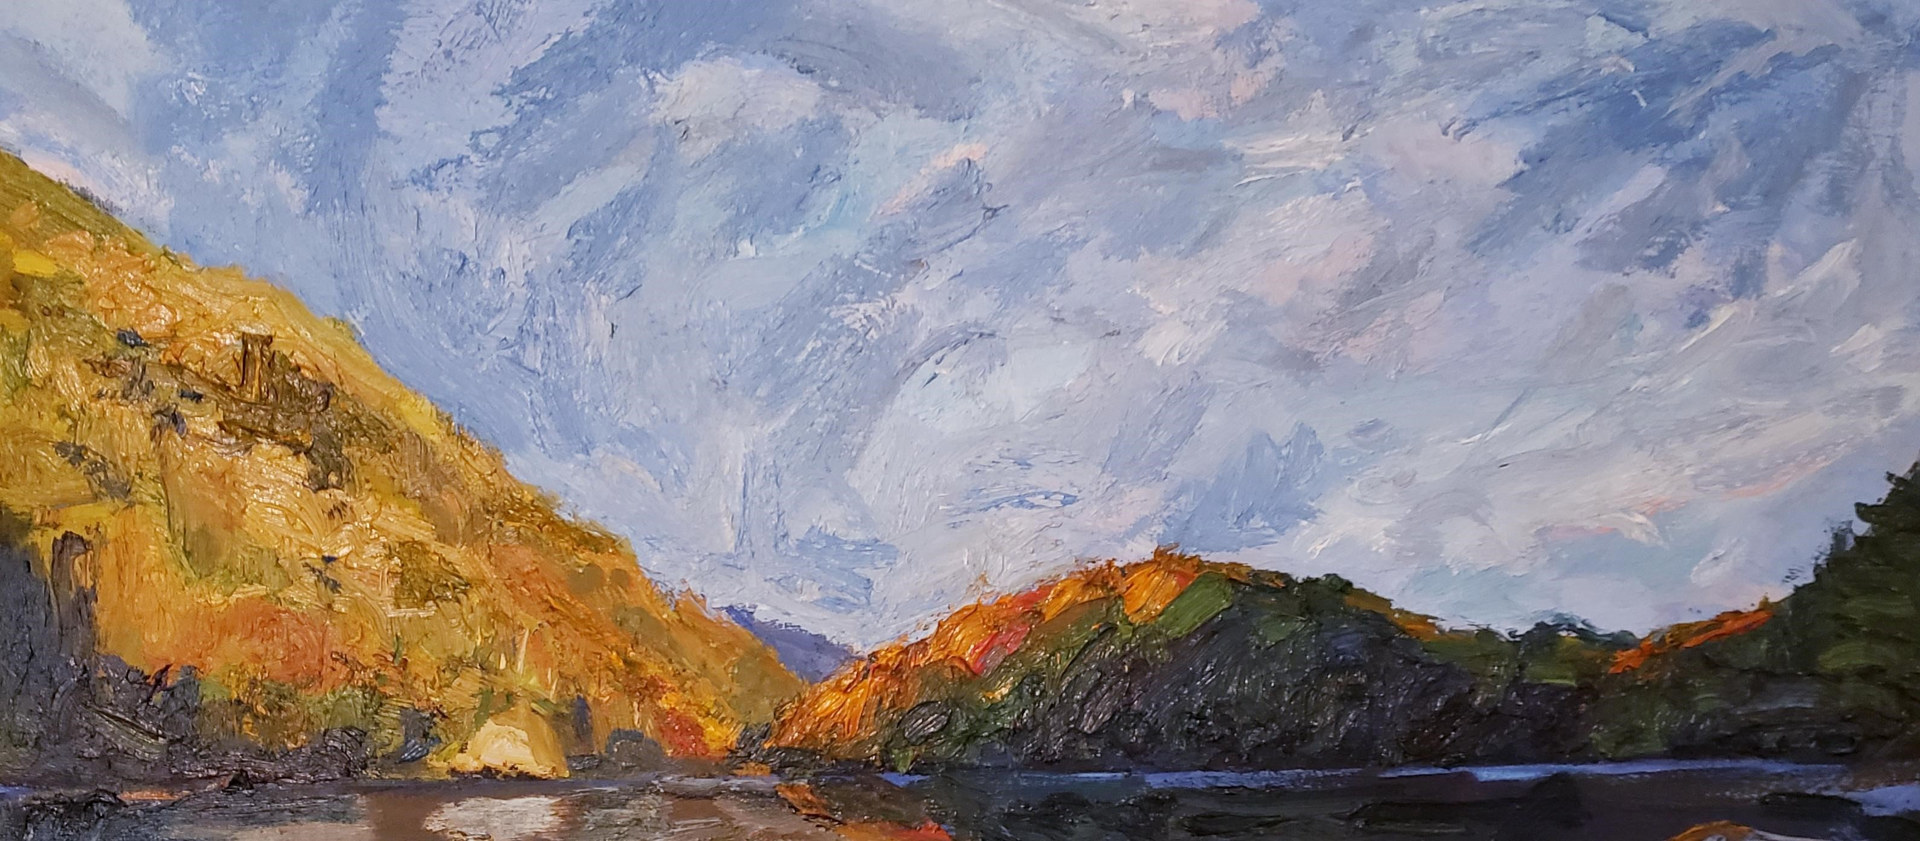 Painting Here Comes the Sun 12x28 oil by Michael Gaudreau